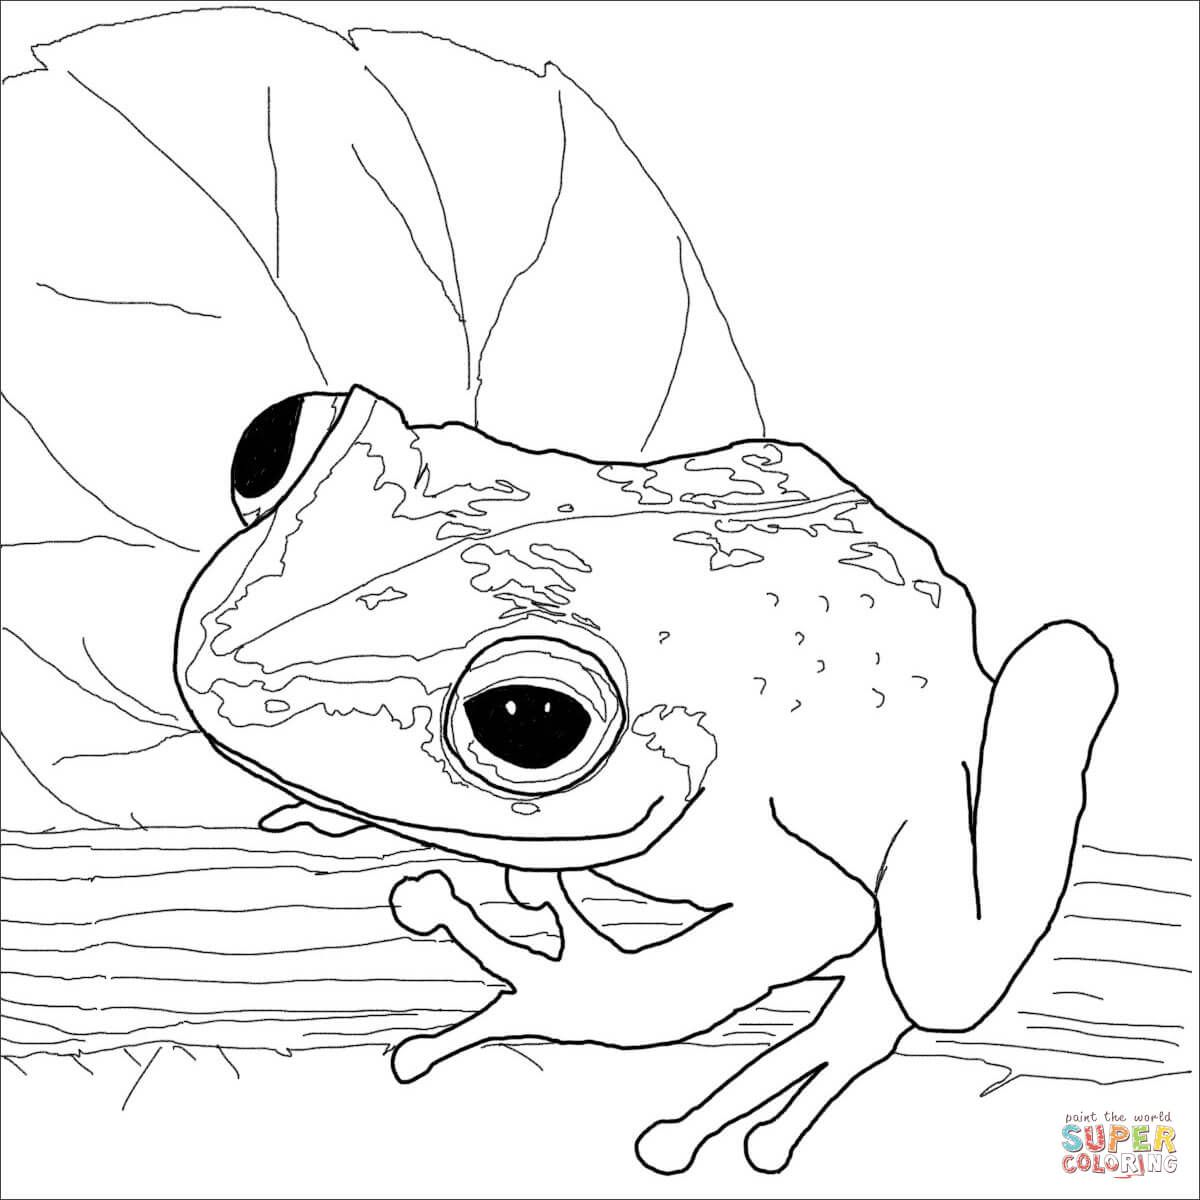 Coqui Frog Super Coloring Frog Coloring Pages Animal Coloring